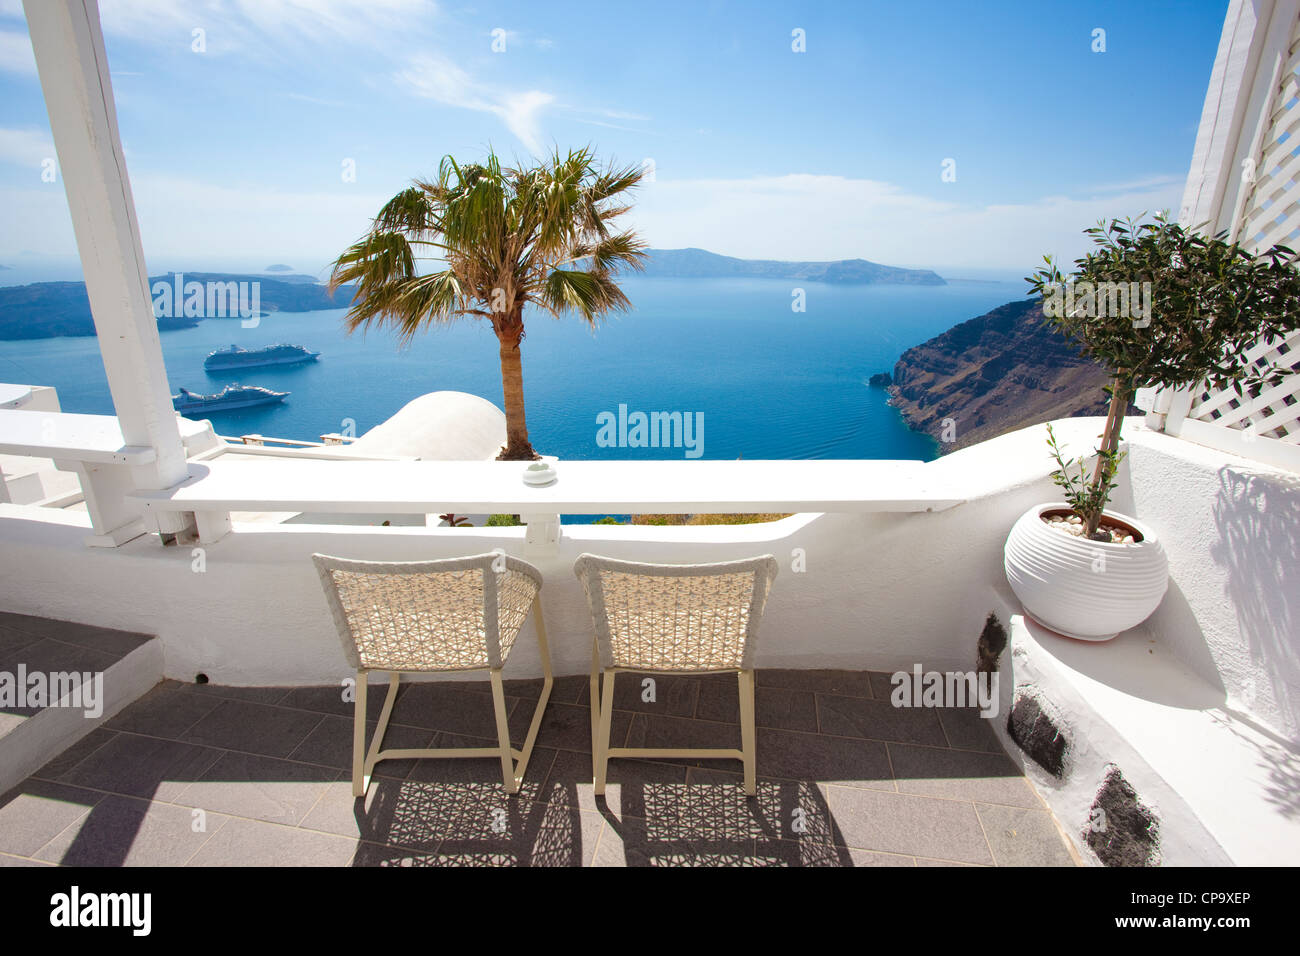 View from Millhouses studios looking out onto the Aegean Sea, Firostephani, Santorini, Cyclades, Greece - Stock Image